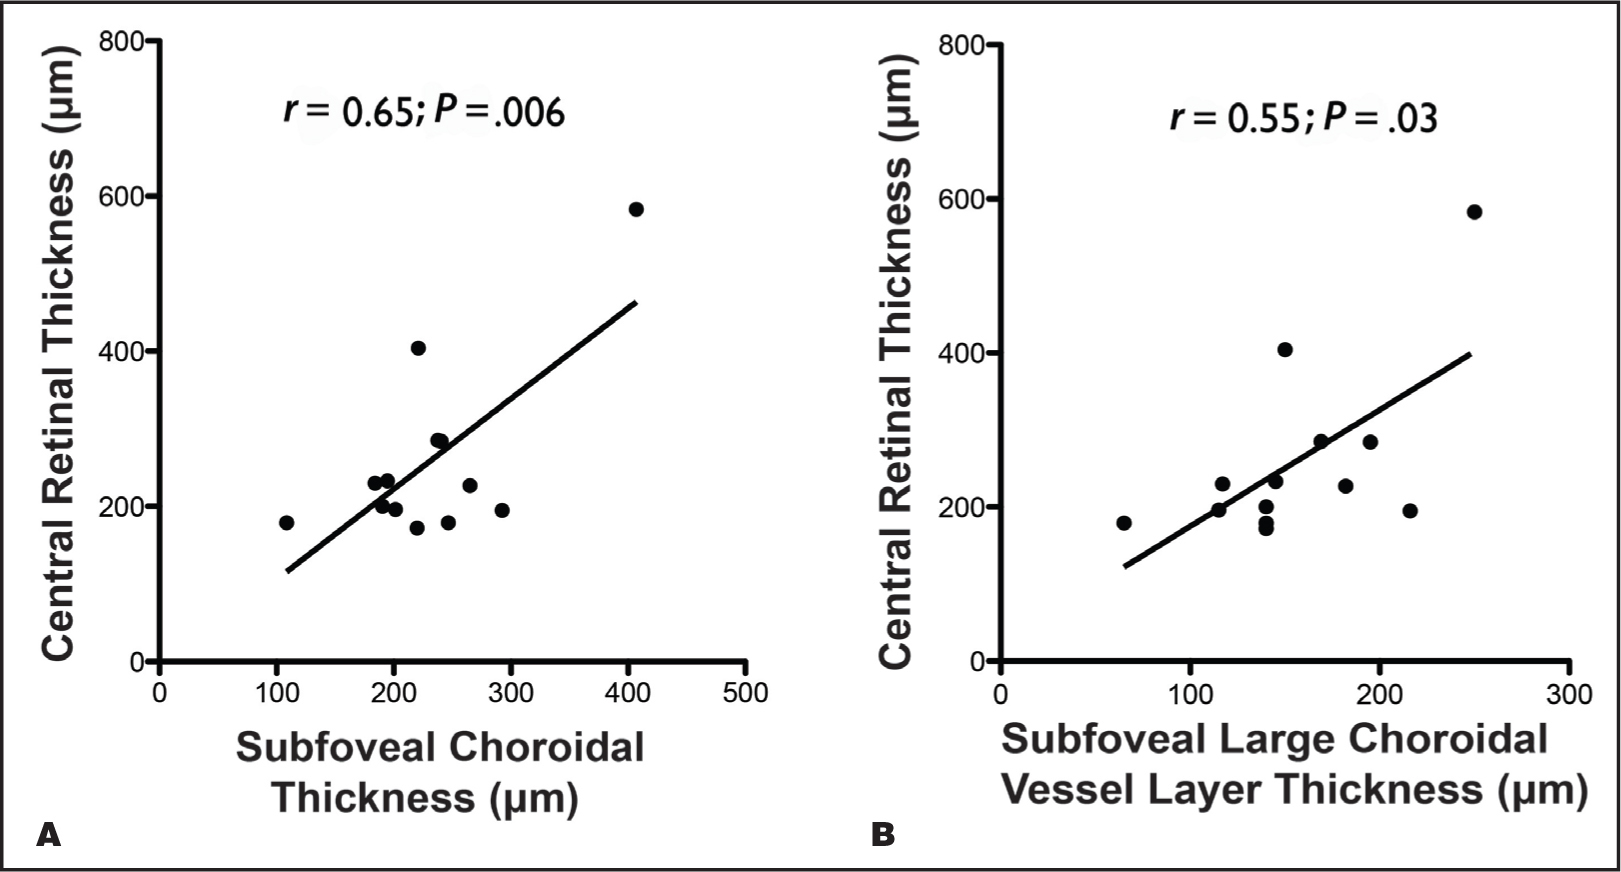 Correlation of central retinal thickness with choroidal thickness and large choroidal vessel layer thickness in eyes with RP. Graphs representing a strong positive correlation between the central retinal thickness and subfoveal choroidal thickness (A) and central retinal thickness and subfoveal large choroidal vessel layer thickness (B). The r and P values represent results of Spearman's correlation.